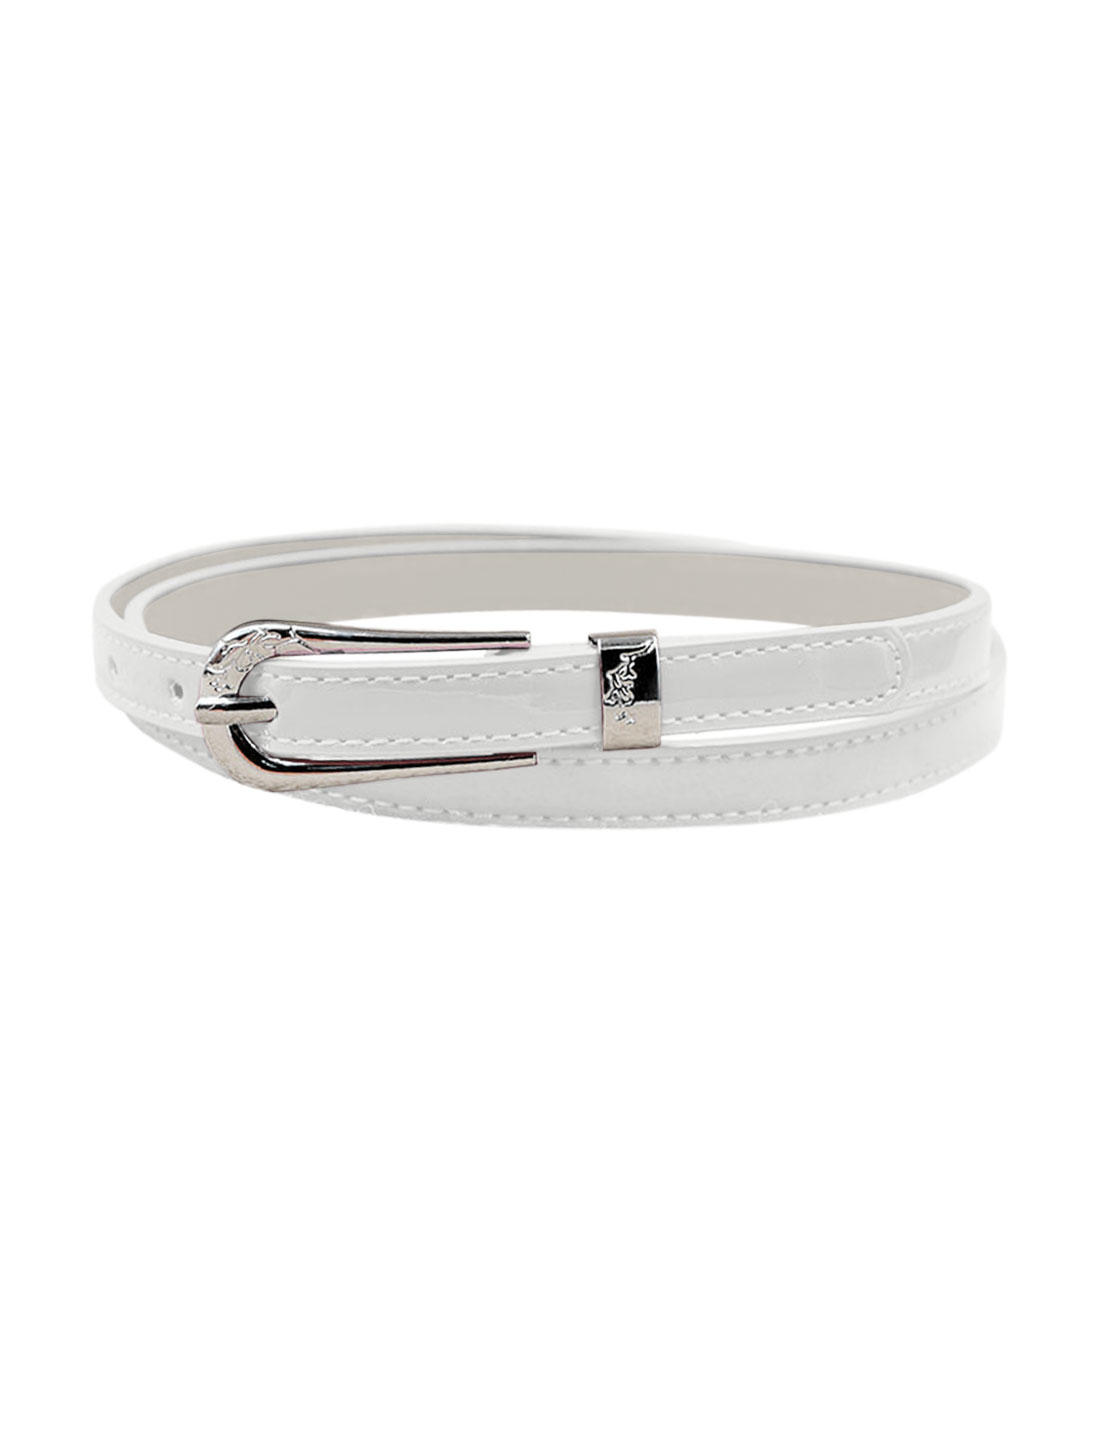 Women Single Pin Buckle Adjustable PU Waist Belt White